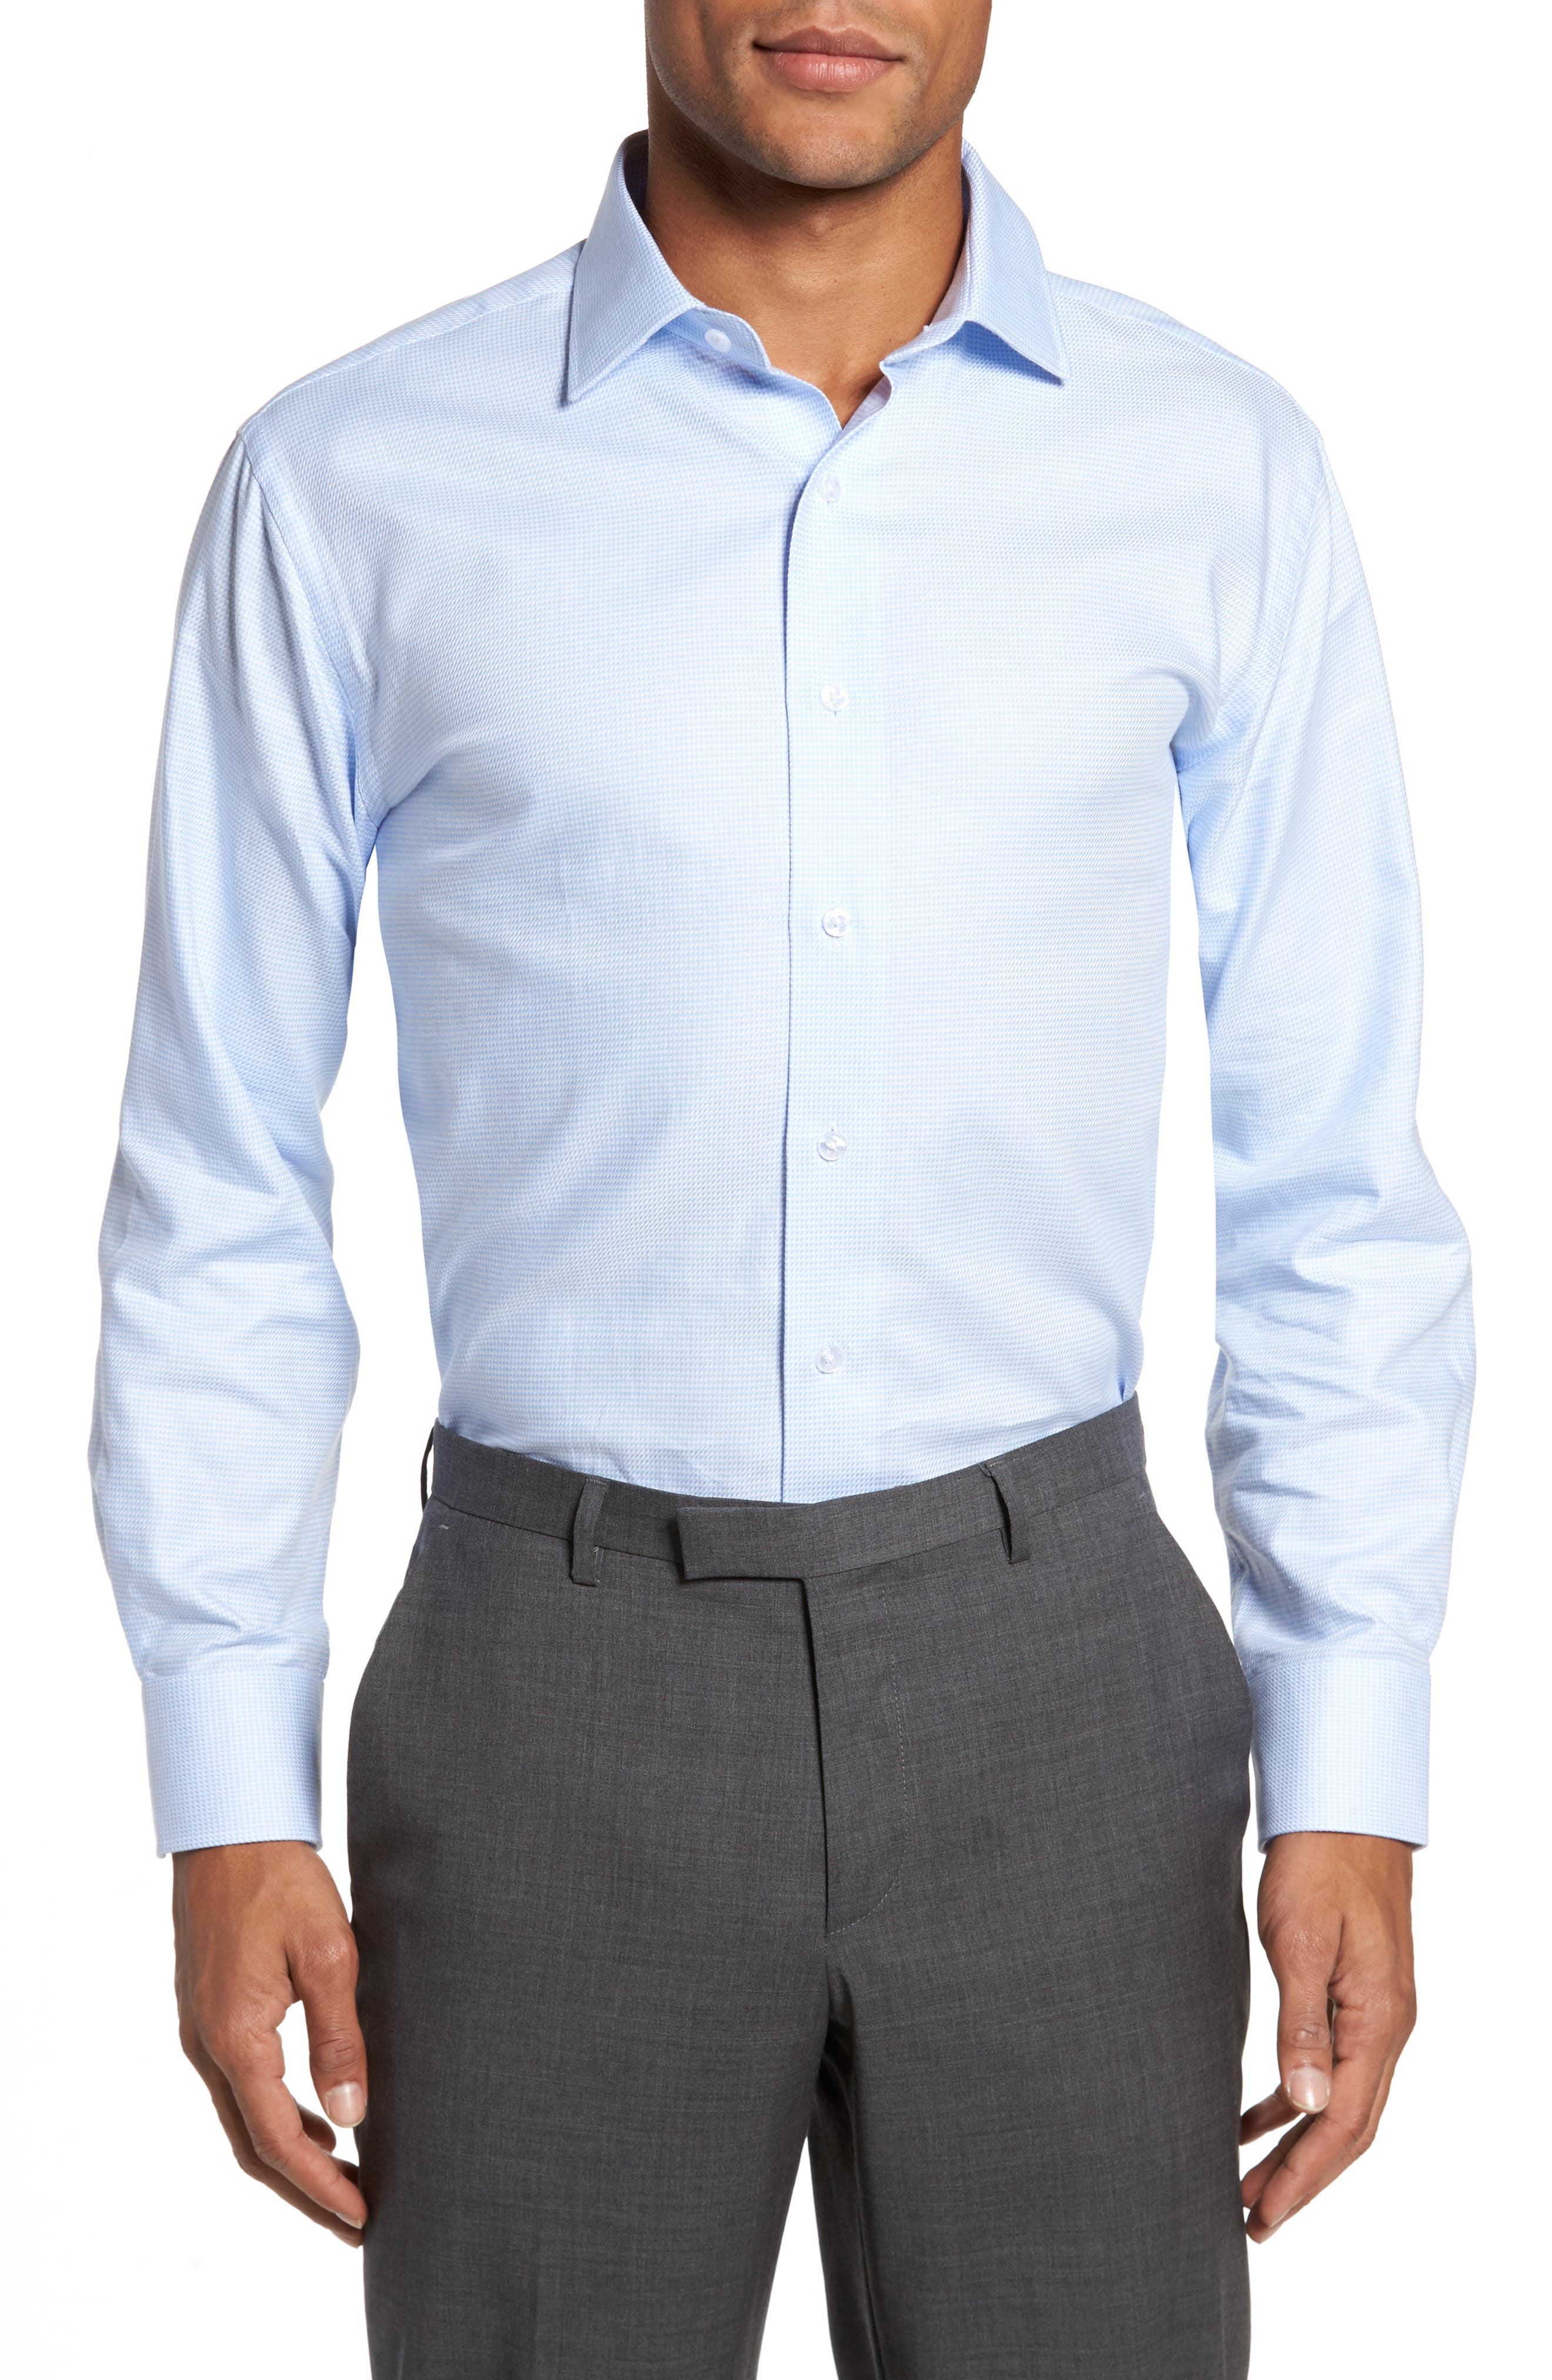 LORENZO UOMO Trim Fit Houndstooth Dress Shirt, Main, color, LIGHT BLUE